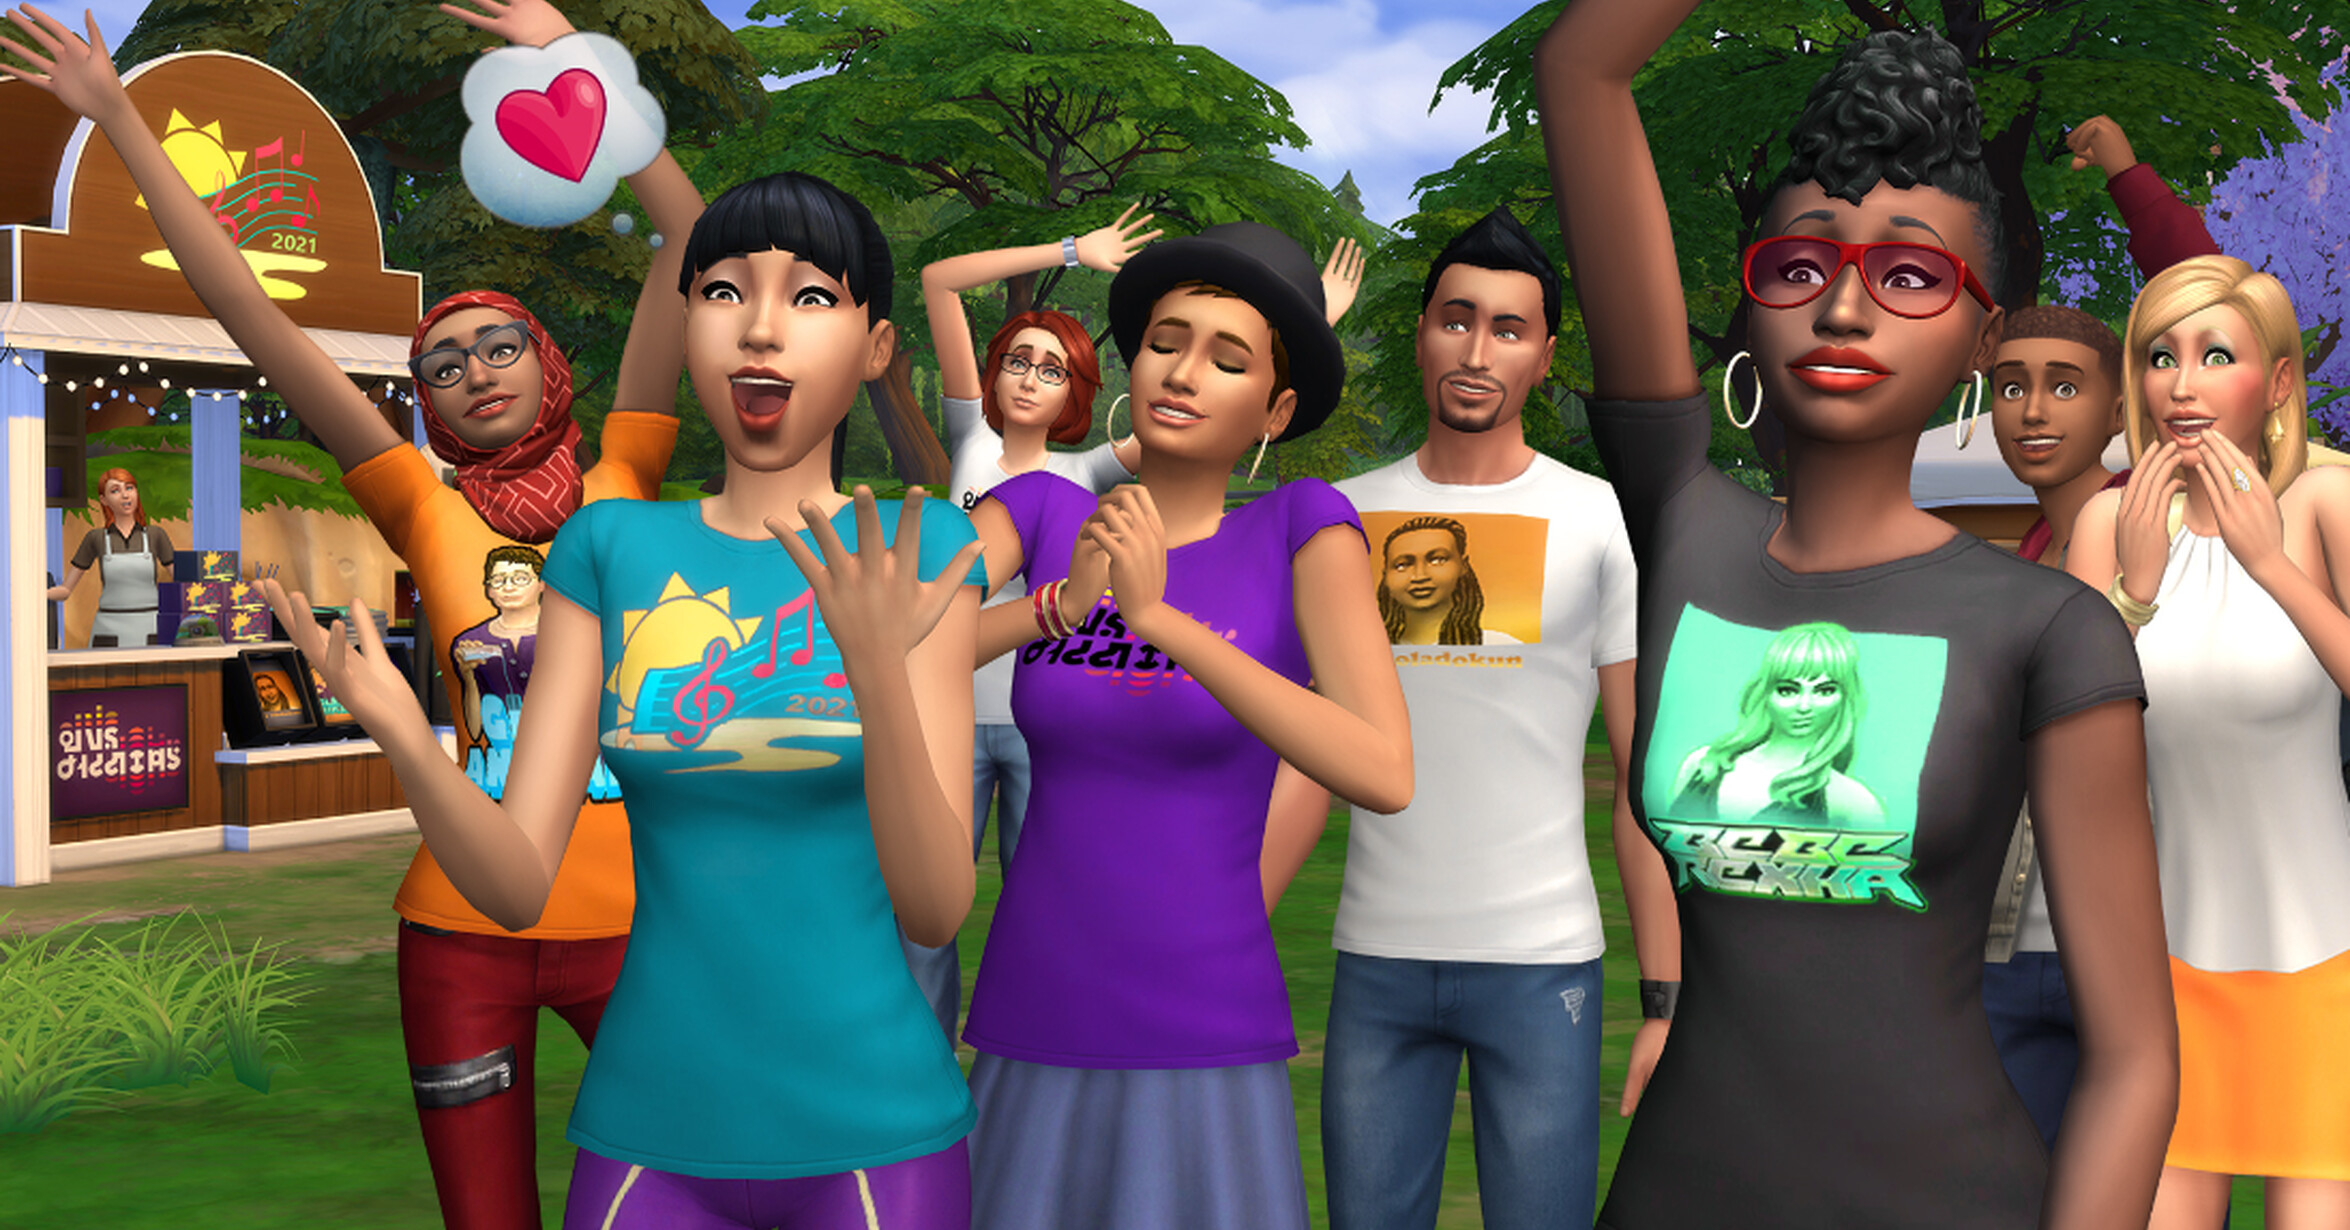 THE SIMS 4 BECOMES THE STAGE OF A NEW MUSIC FESTIVAL THIS SUMMER WITH THE SIMS SESSIONS